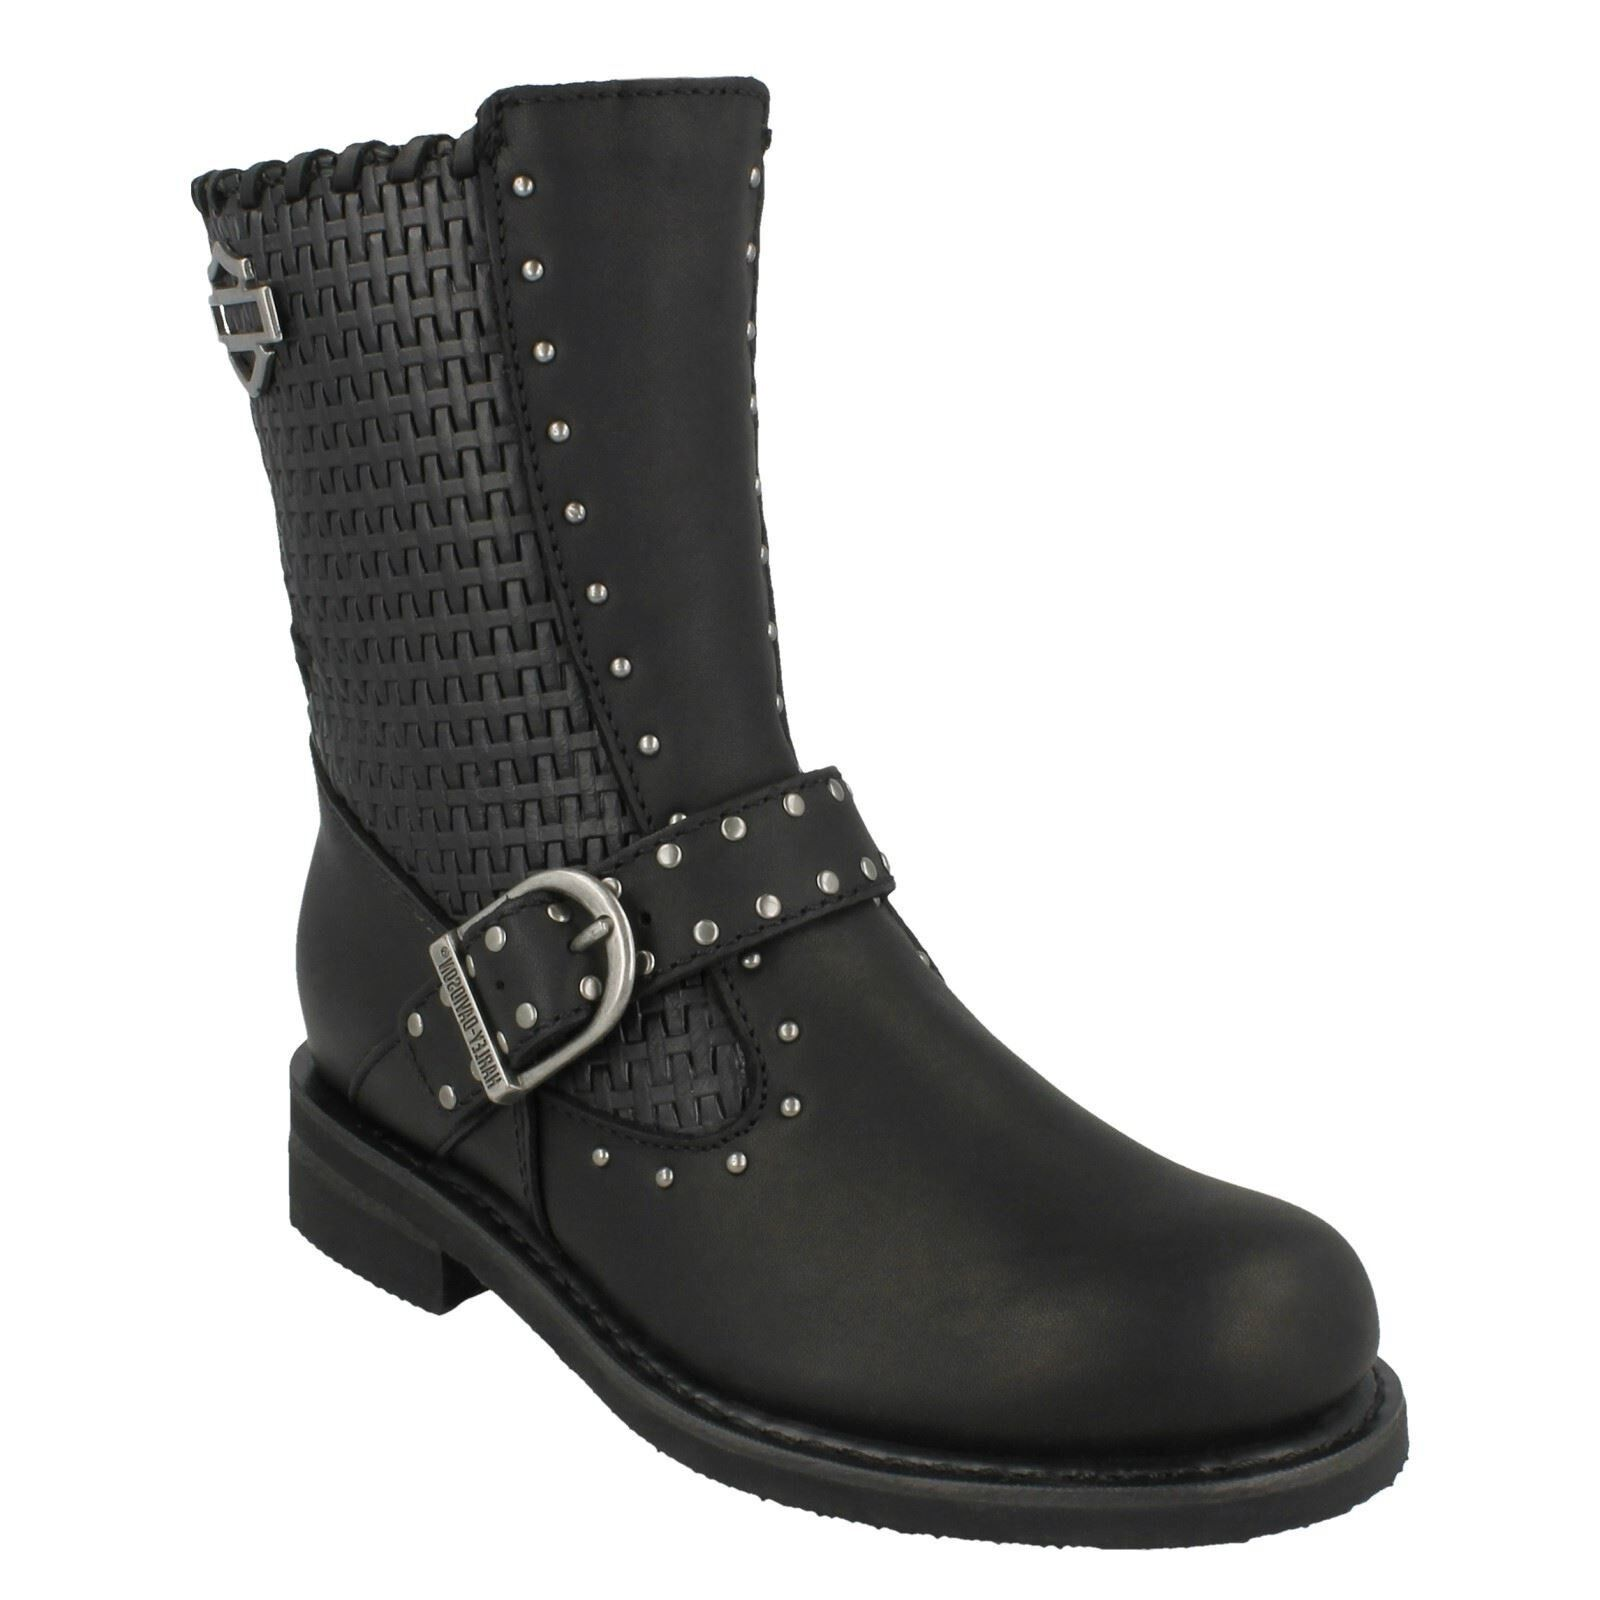 LADIES HARLEY DAVIDSON ABBIE negro ZIP LEATHER STUDDED CASUAL BIKER botas D87017